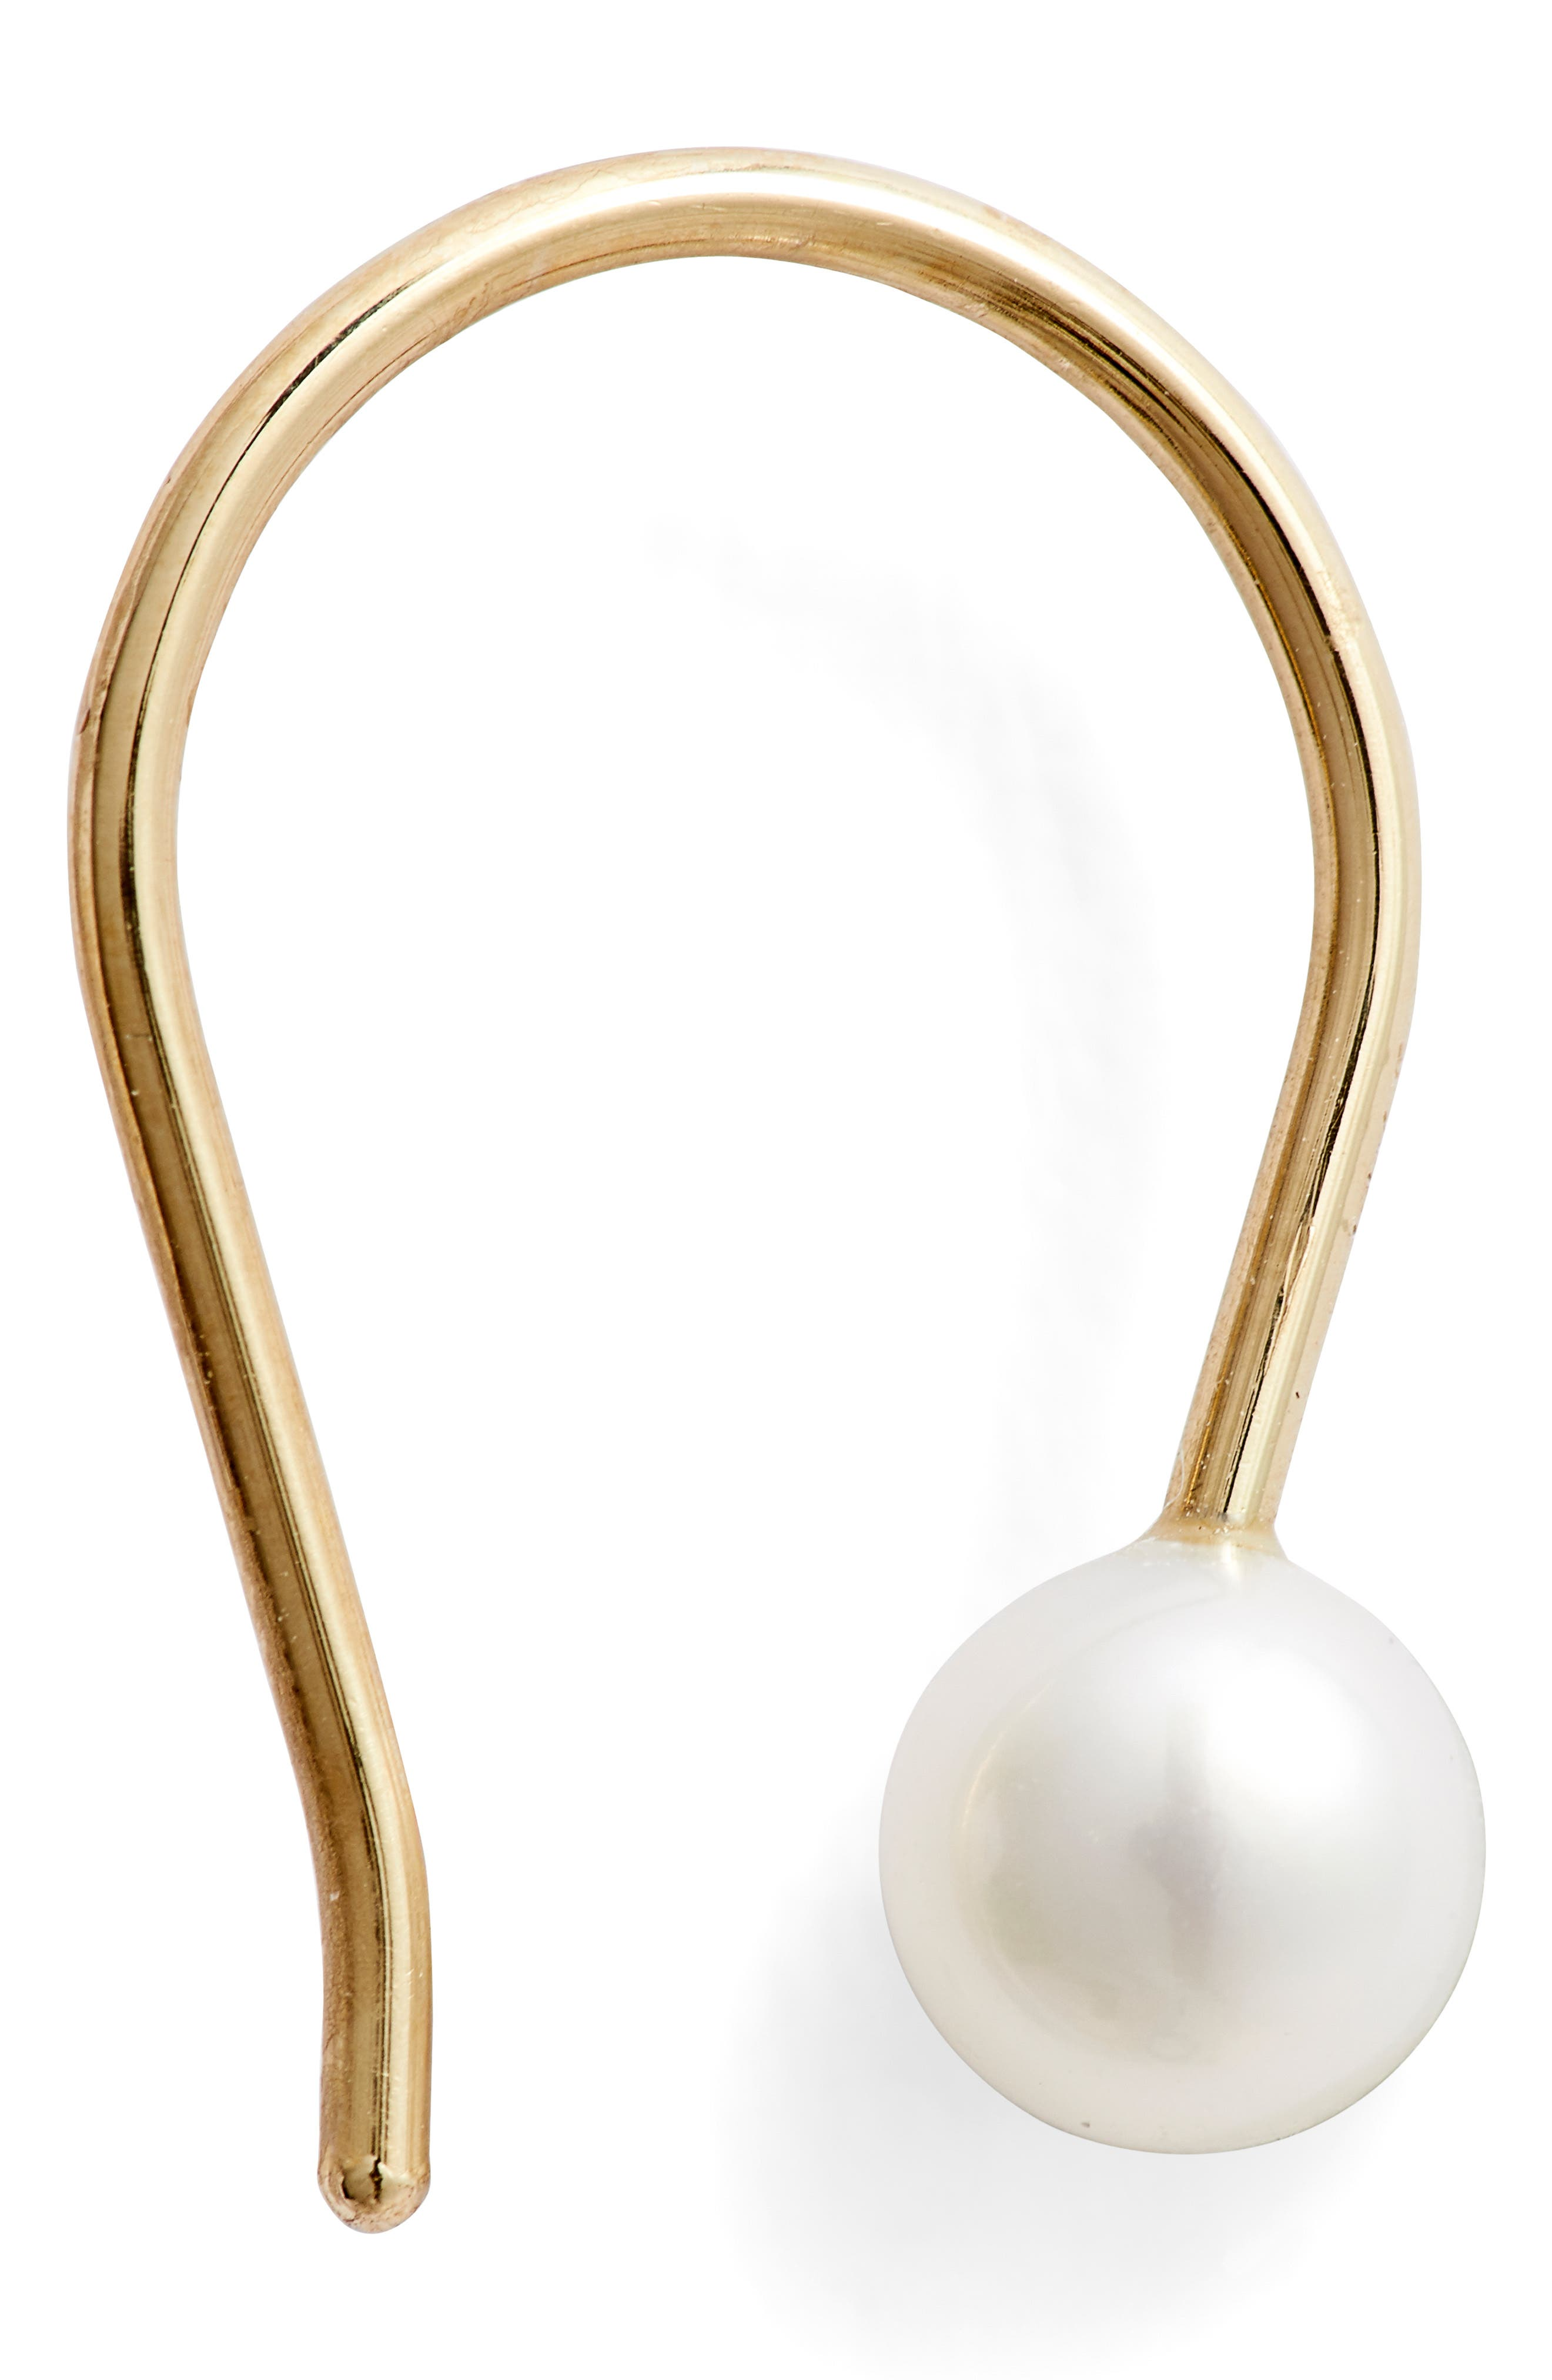 Baby Cultured Pearl Earrings,                             Alternate thumbnail 4, color,                             YELLOW GOLD/ WHITE PEARL